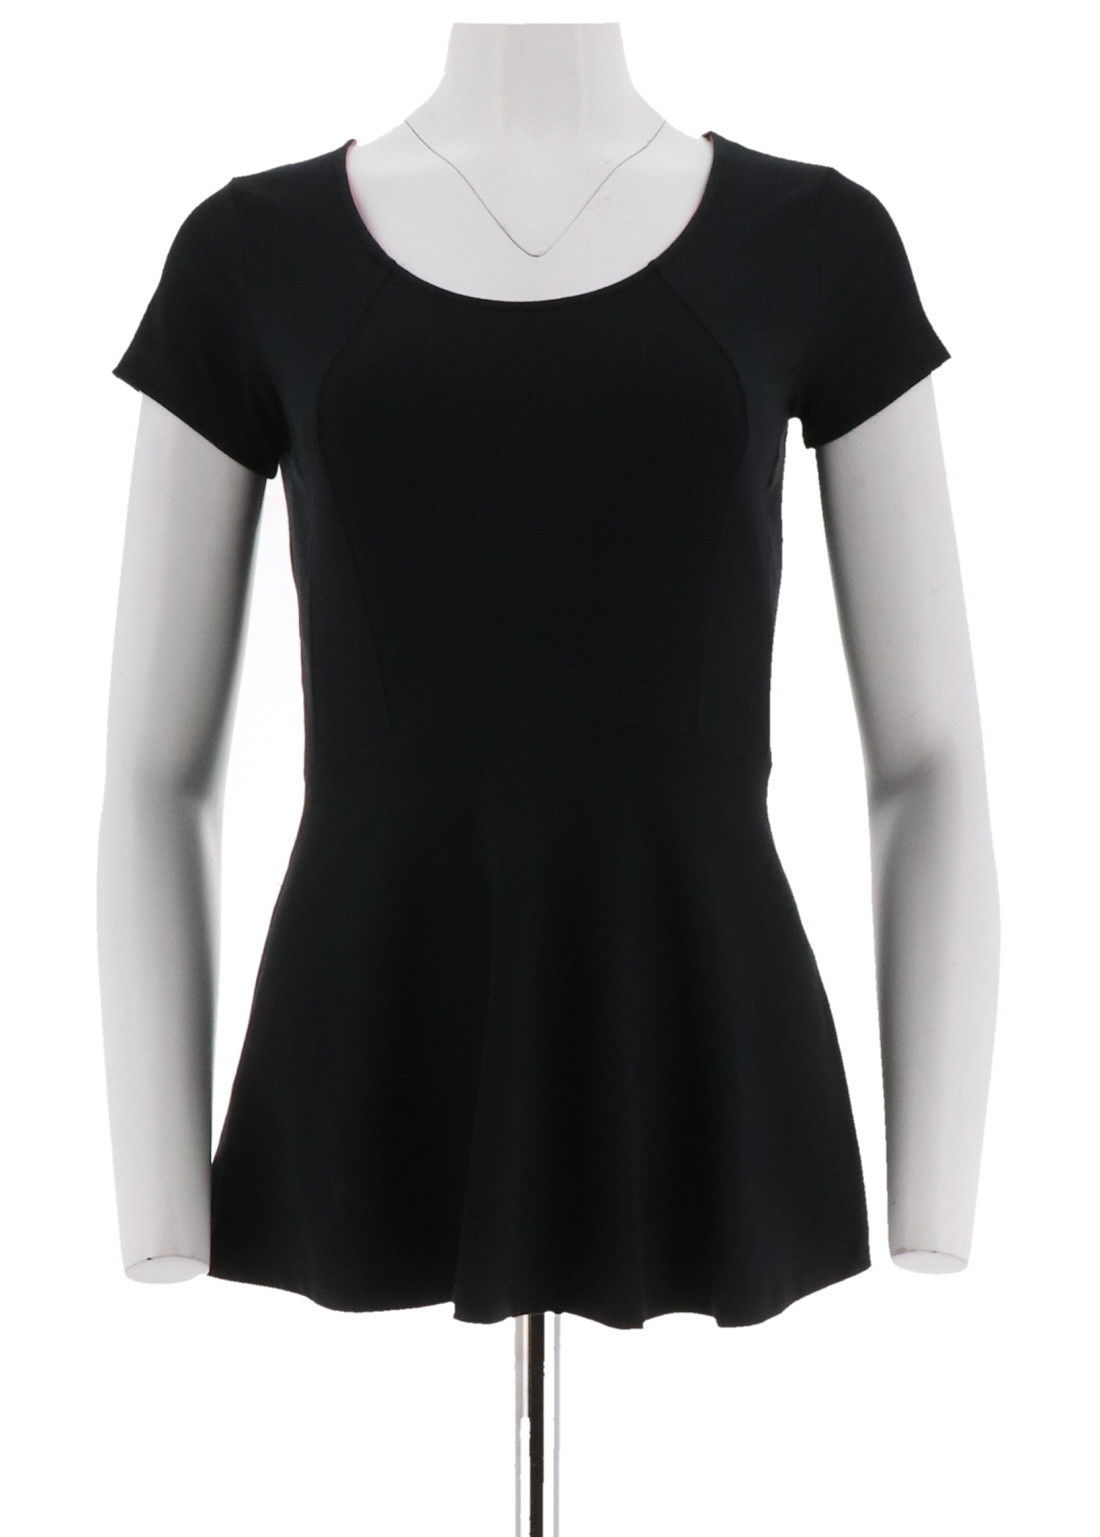 Primary image for Isaac Mizrahi Wake Up Comfortable Short Slv Peplum Knit Top Black XS NEW A265193